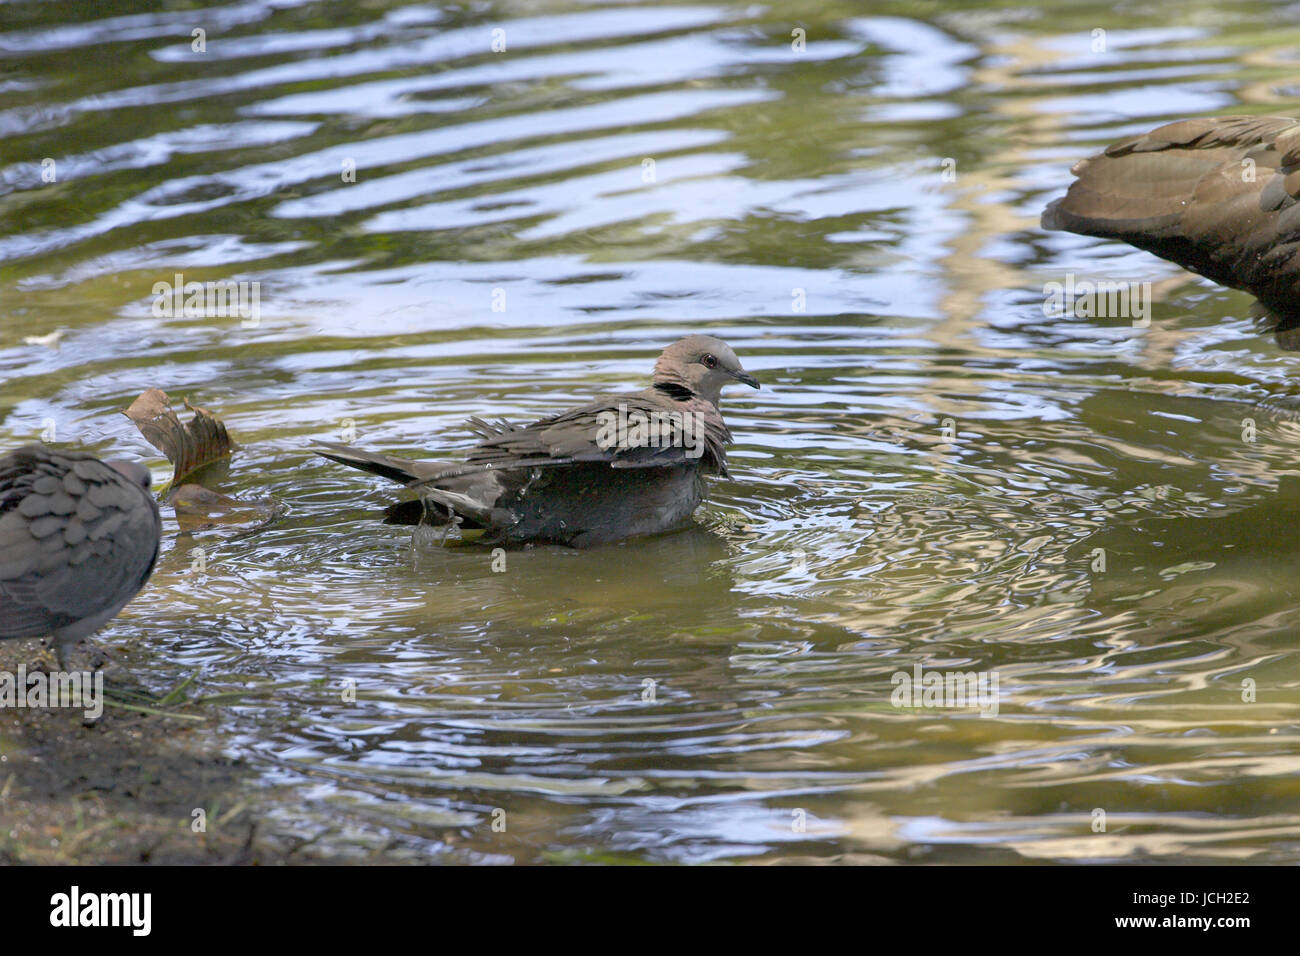 African Mourning Dove Stockfotos & African Mourning Dove Bilder - Alamy